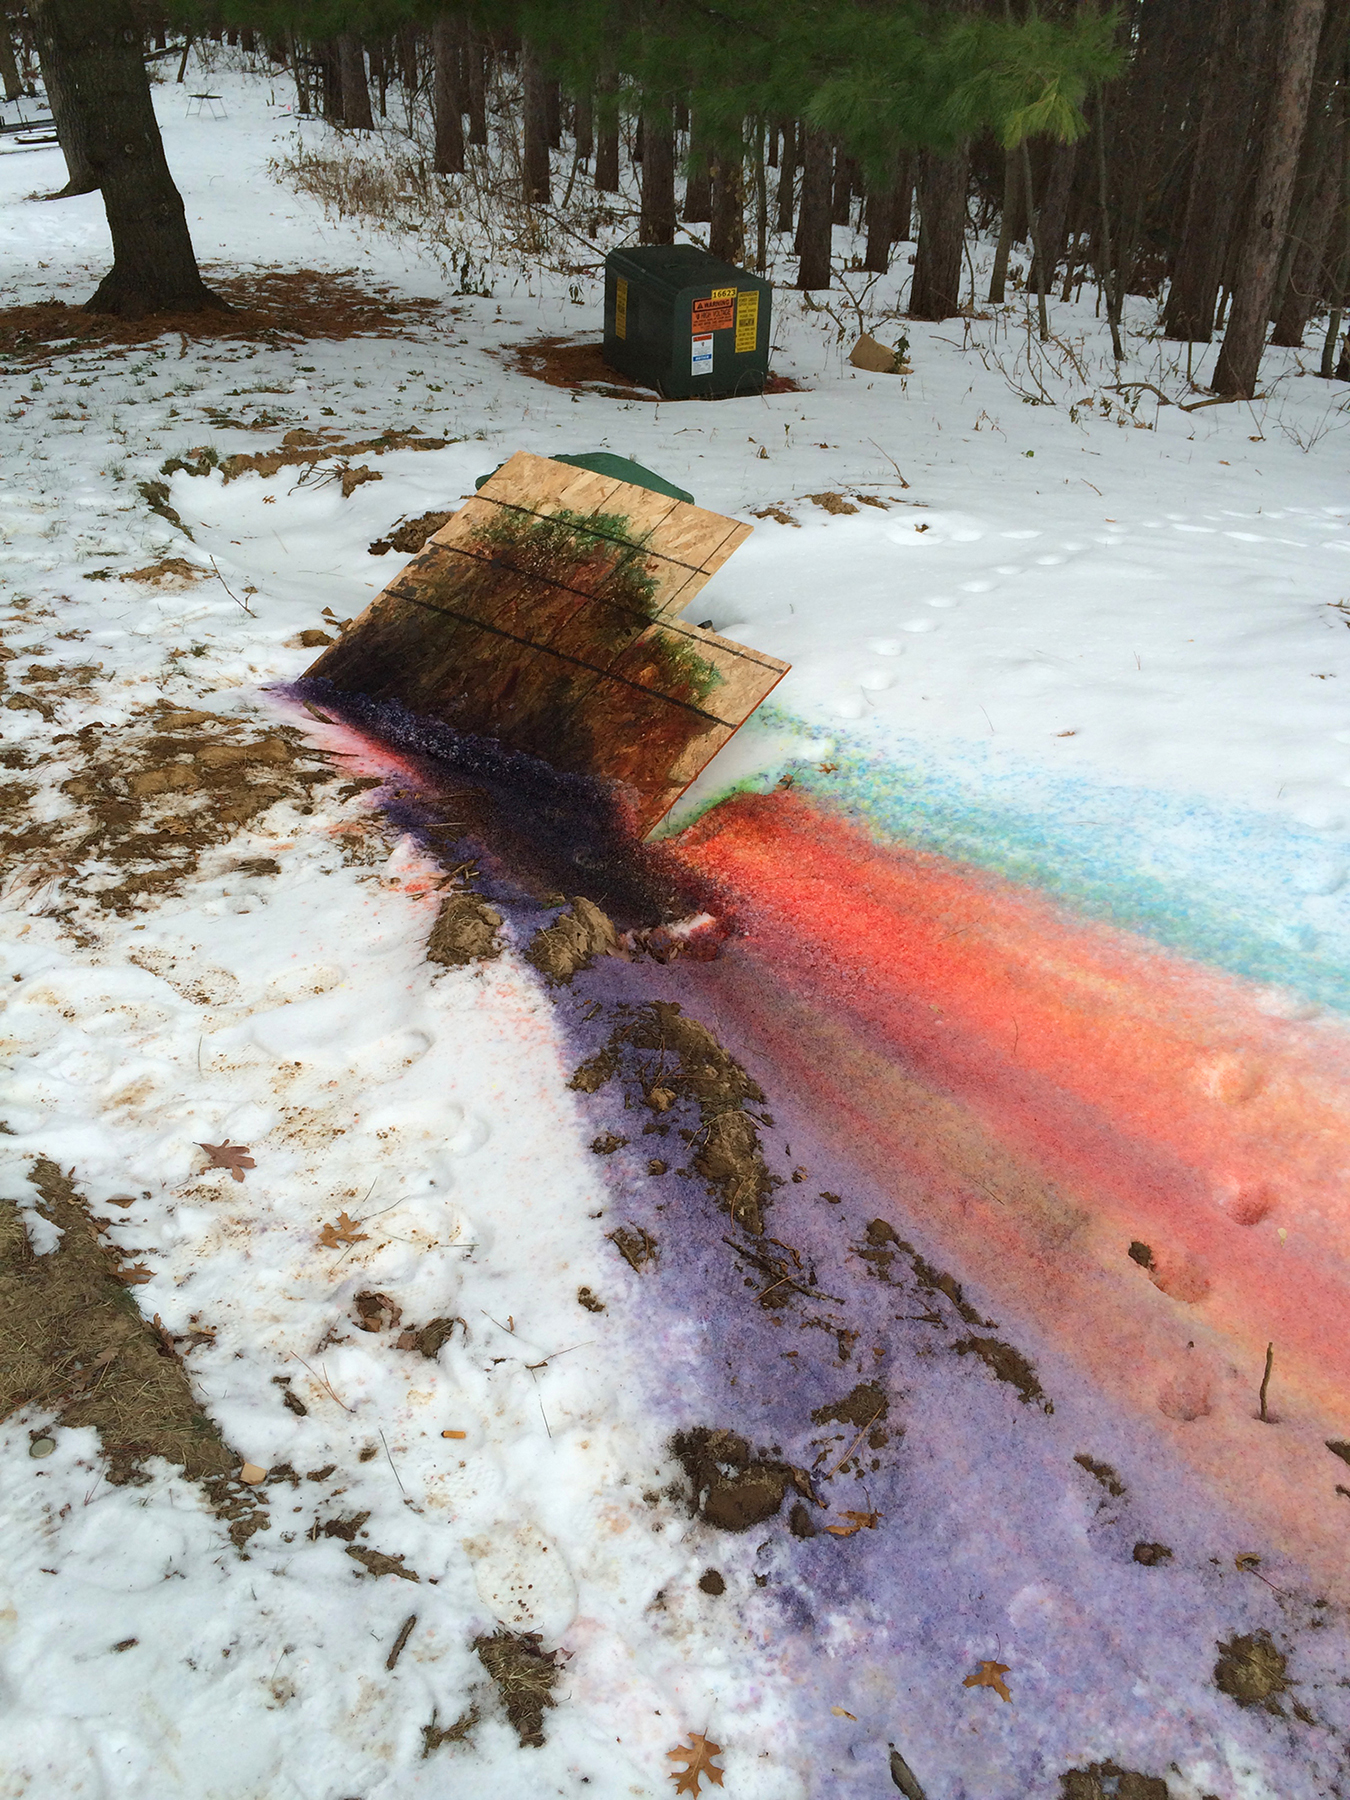 rainbow dye in snow